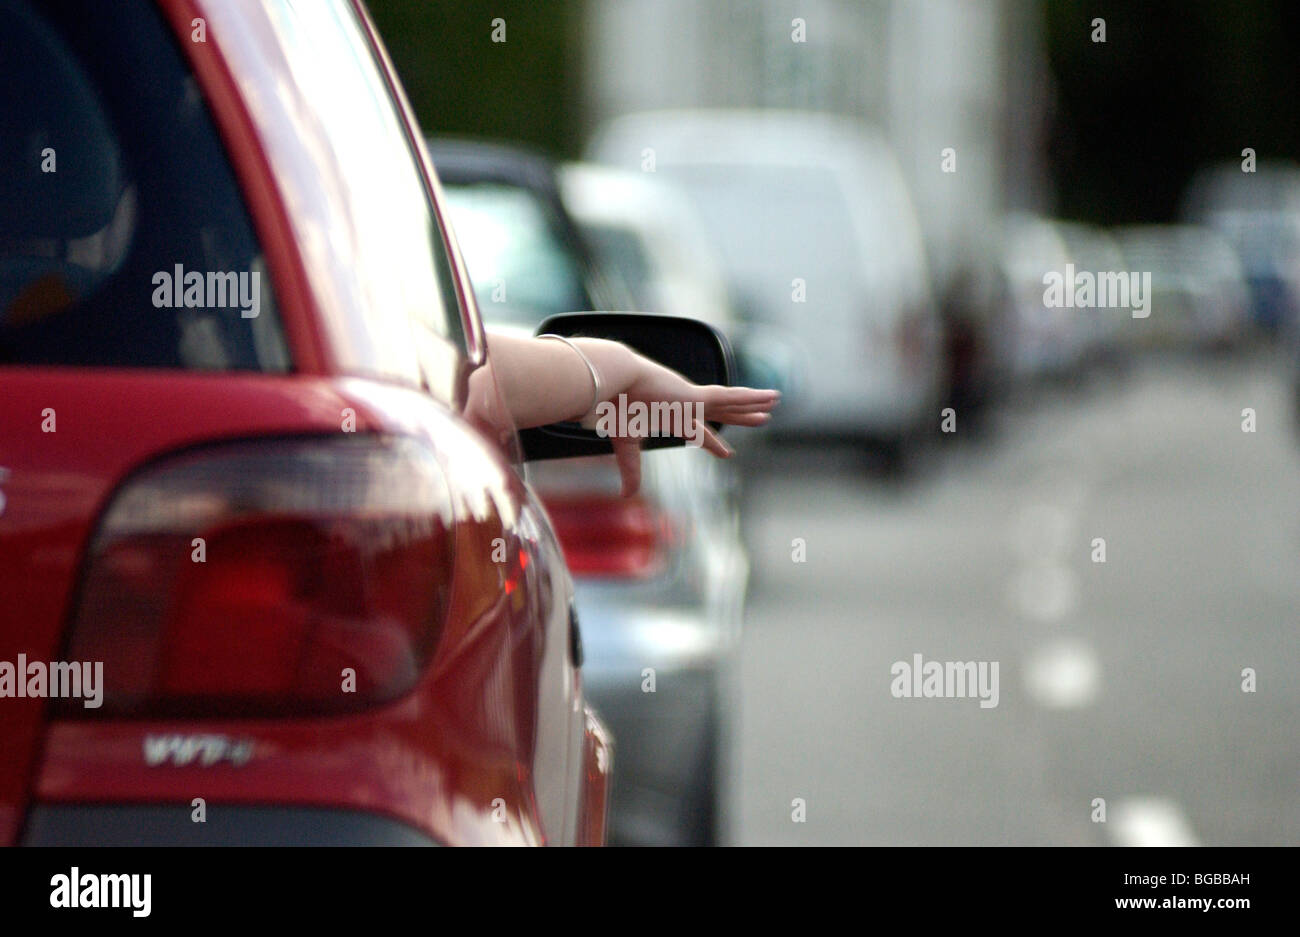 Motorway Delay Stock Photos Images Alamy In Car Lights Royalty Free Photograph Of Woman Traffic Jam Congestion Queuing Bored M25